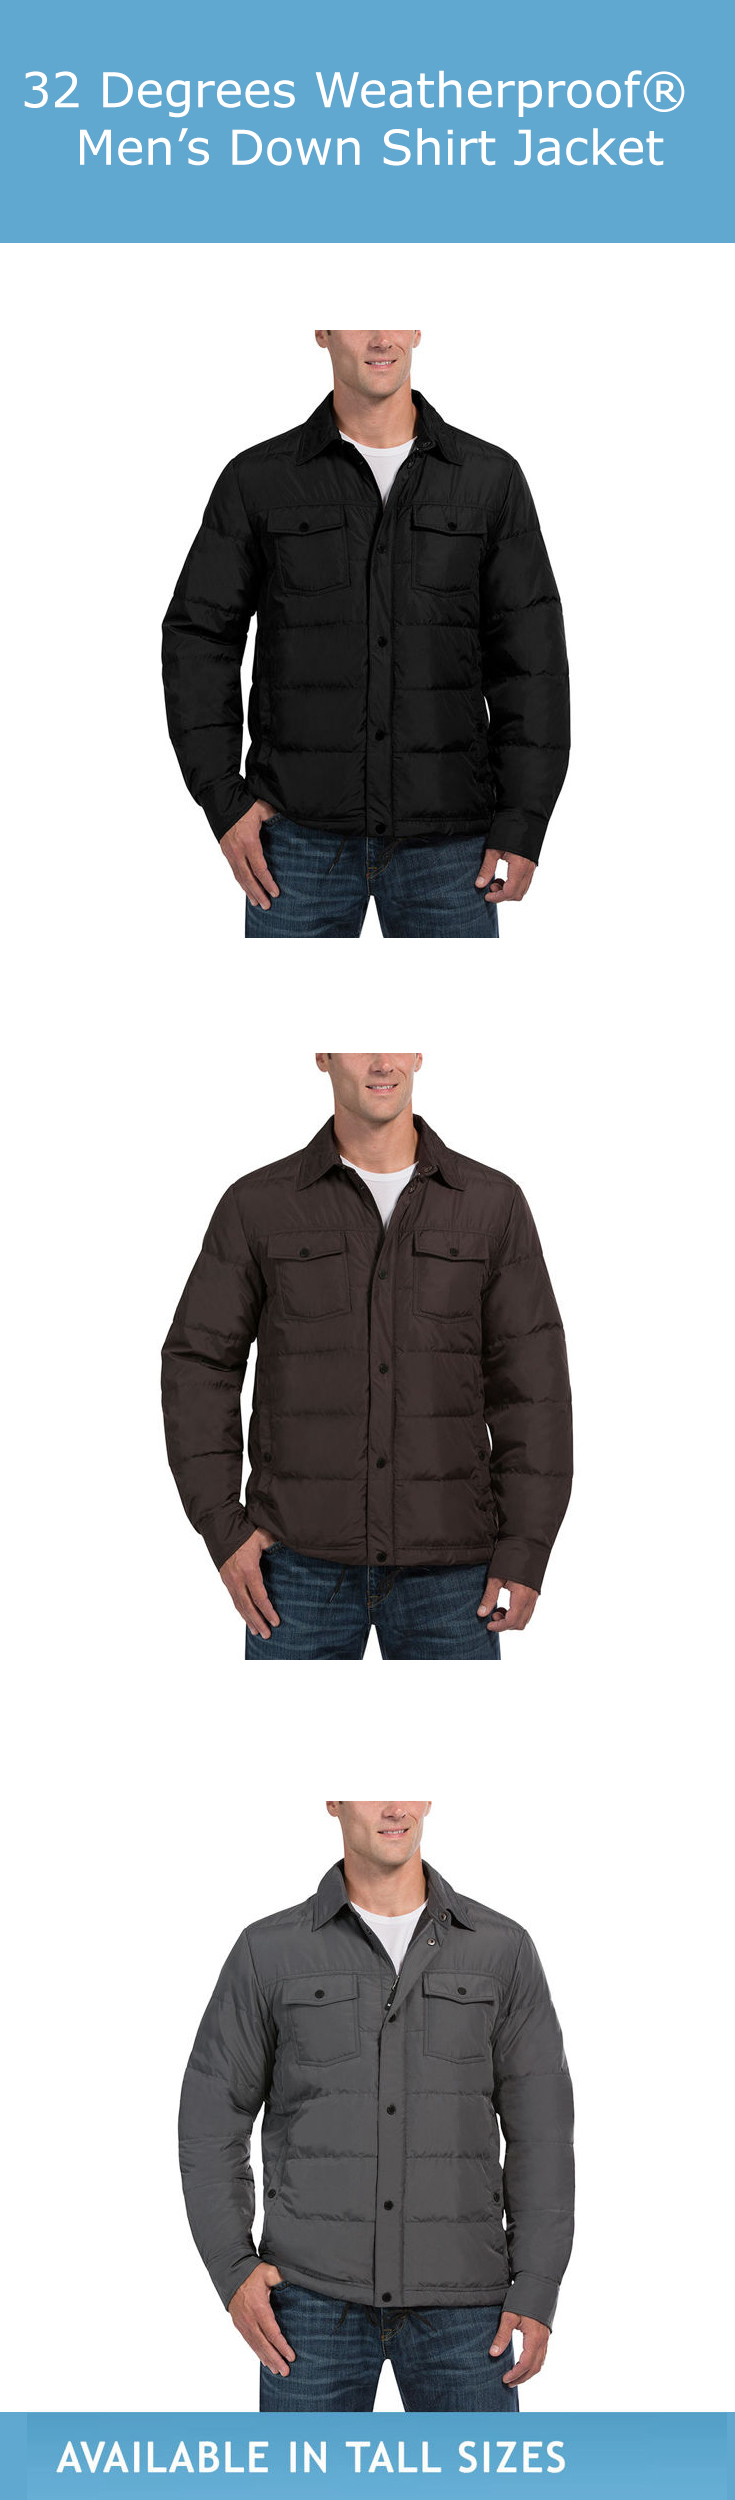 32 Degrees Weatherproof Men S Down Shirt Jacket Espresso Ultra Light Packable Down 90 Down 10 Feather Insul Jackets Affordable Jackets Outerwear Jackets [ 2500 x 735 Pixel ]